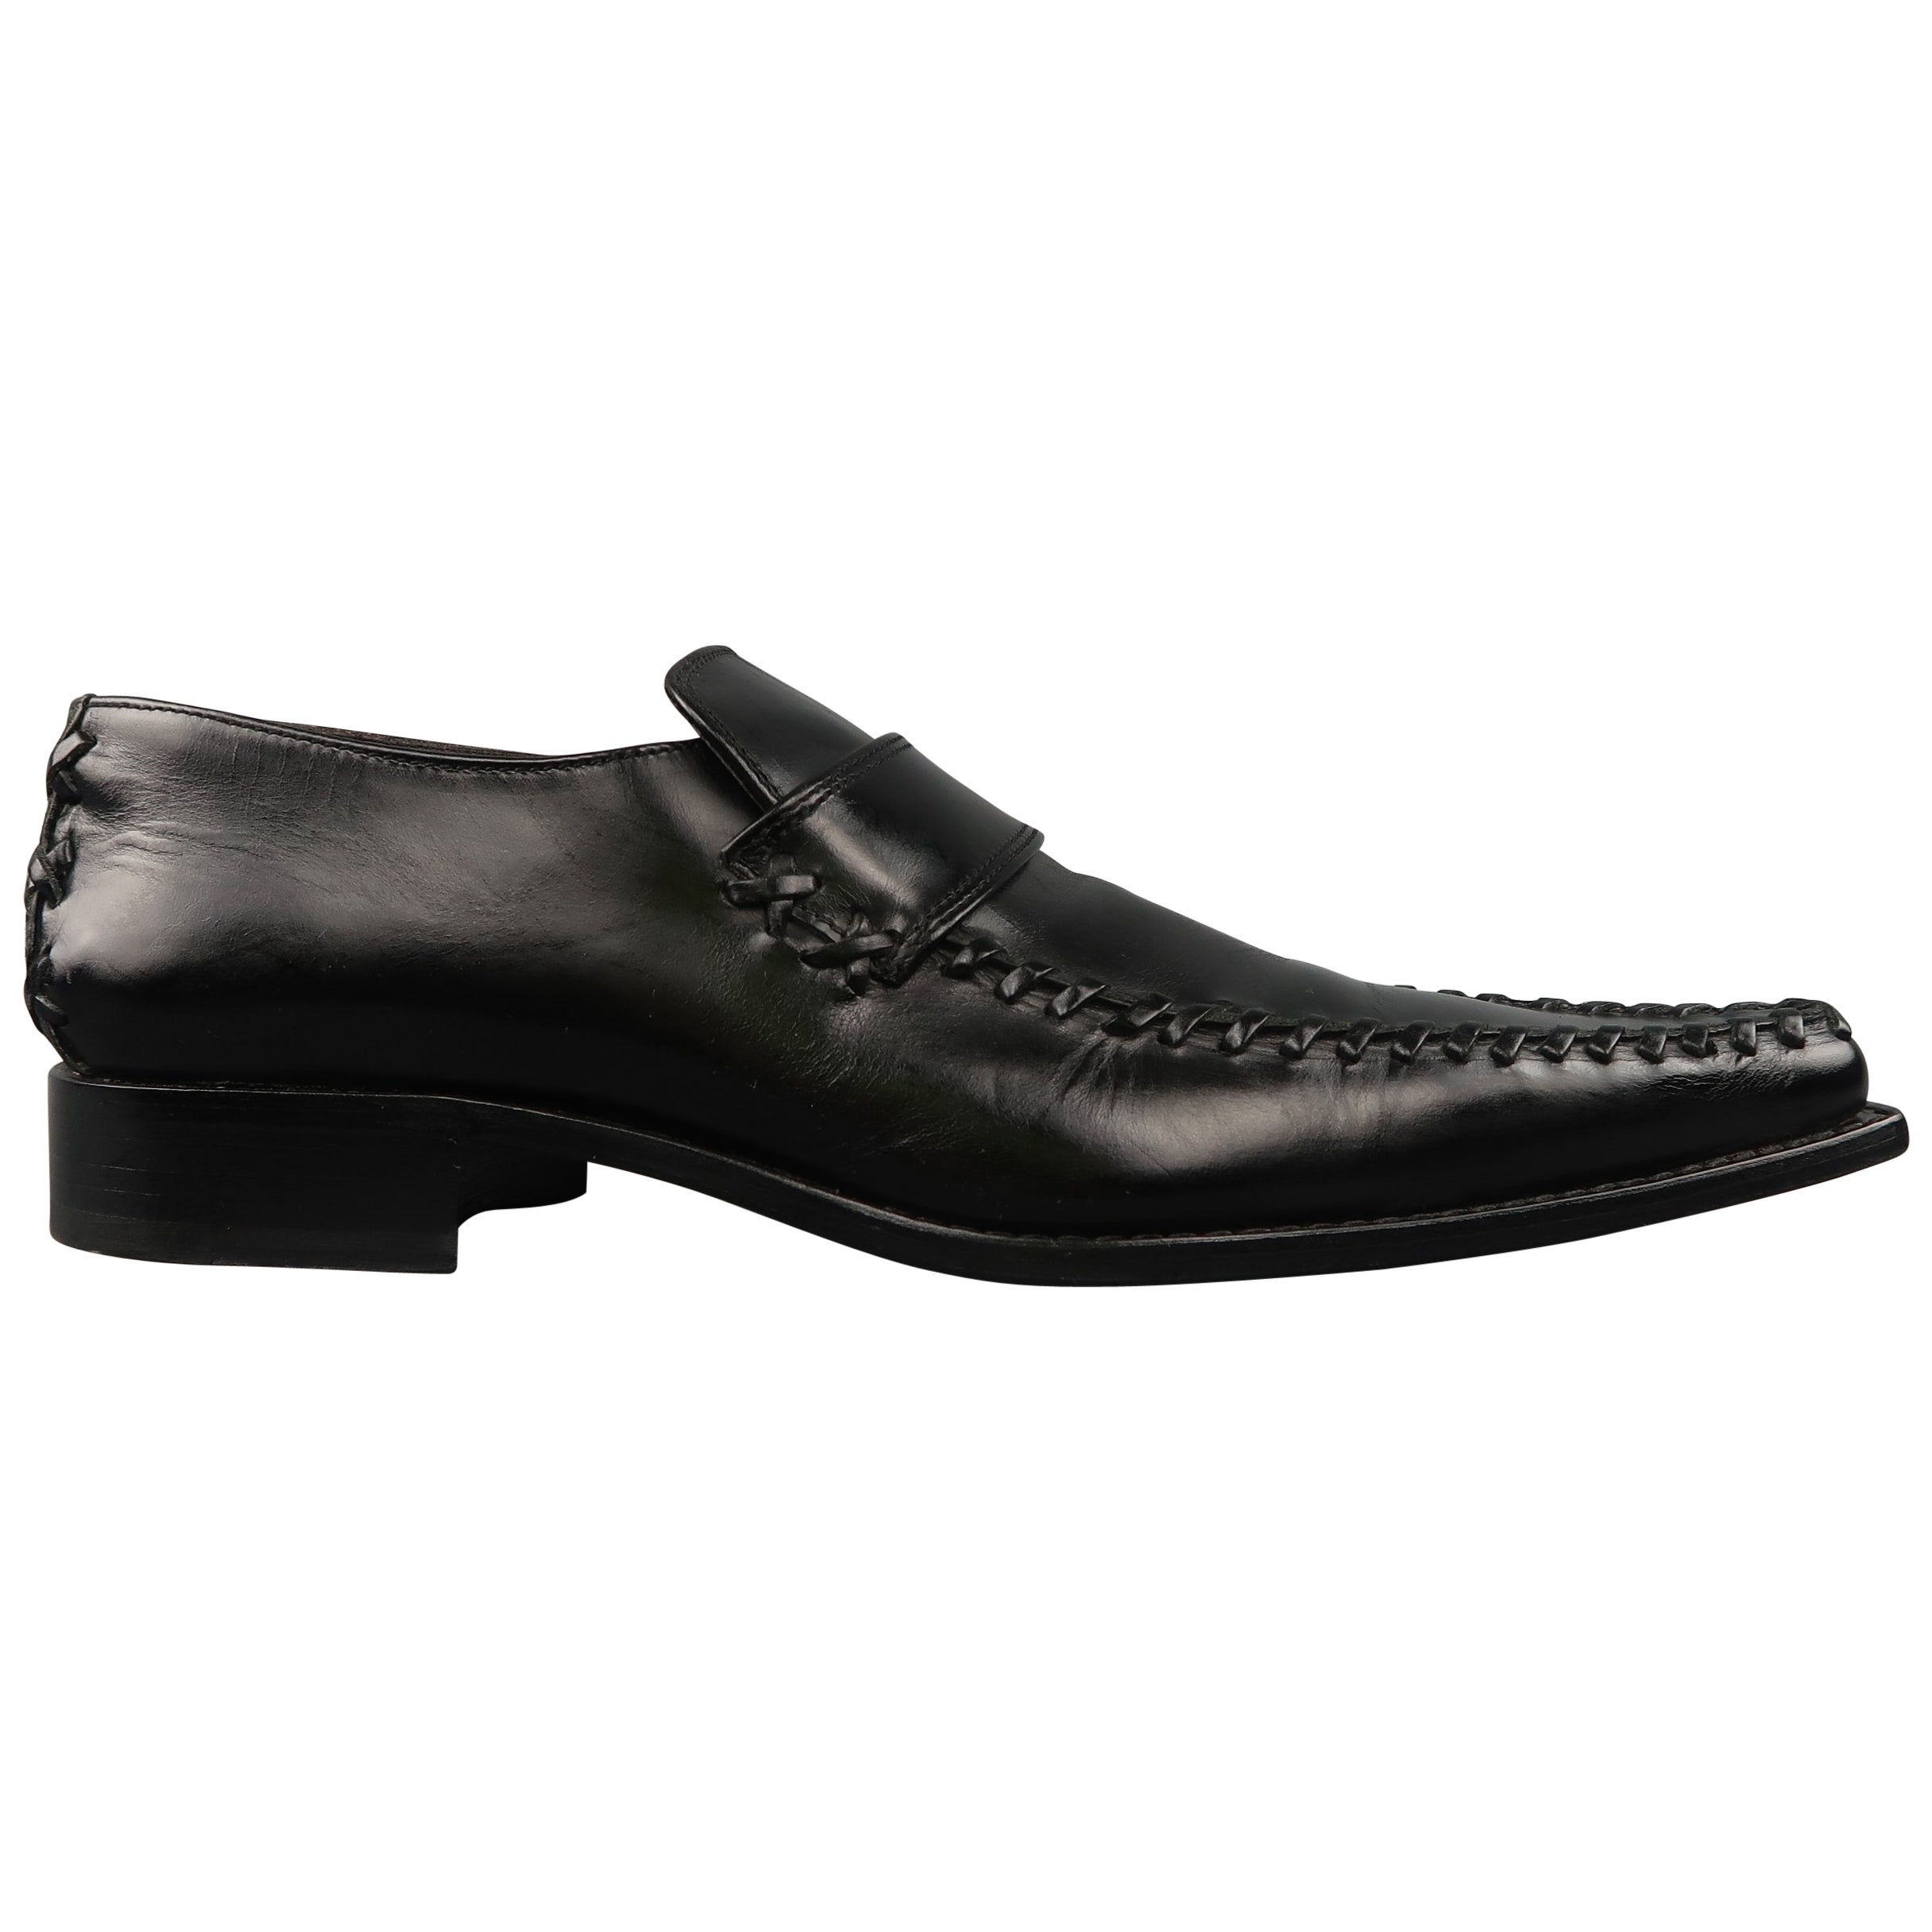 84a74f676e085 Men's DSQUARED2 Size 12 Black Leather Pointed Whip Stitch Loafers